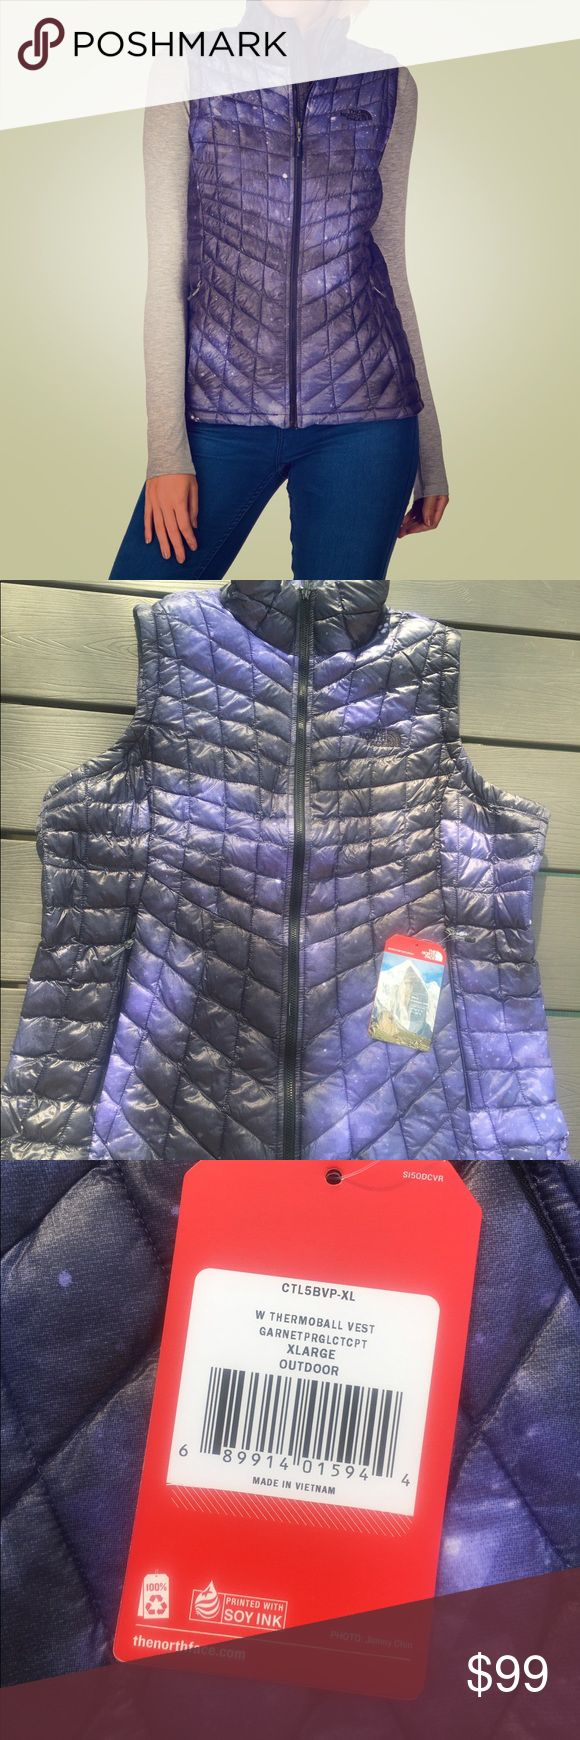 Woman's The North Face Thermoball Vest Extra Large Our most versatile synthetic-insulated vest ThermoBall™ offers the lightweight loft, warmth and compressibility of down with the wet-weather insulating performance of synthetics 15D nylon ripstop with 9.5 g/ft² ThermoBall™ insulation throughout the body Stowable in pocket Active fit Exposed center front zip Secure-zip hand pockets Hem cinch-cord The North Face Jackets & Coats Vests